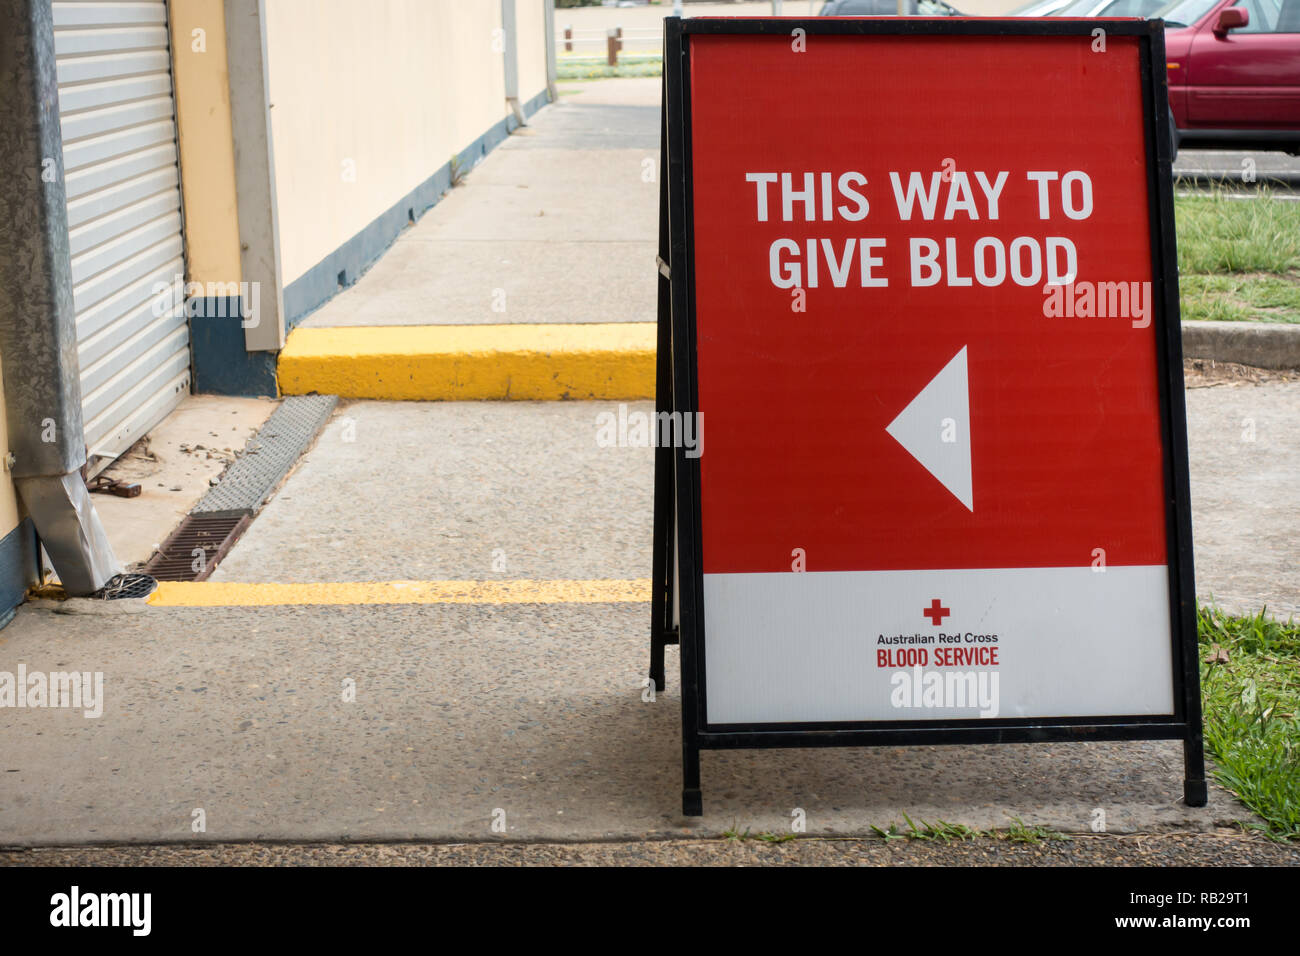 Blood Donor entry sign 'This Way to Give Blood' - Stock Image